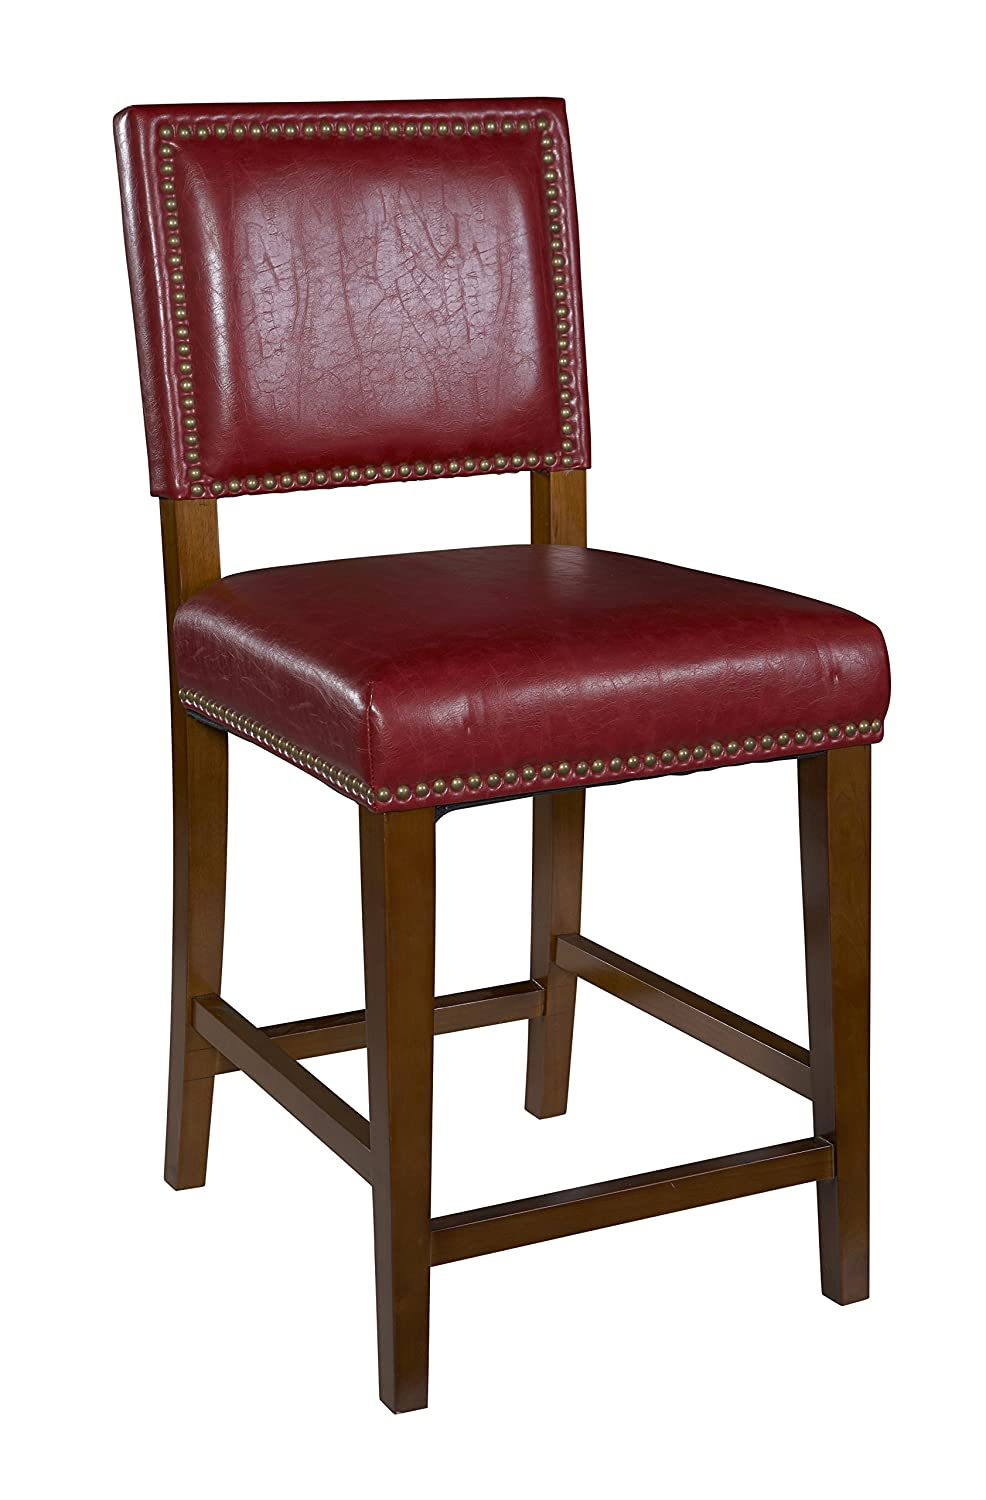 sc 1 st  Amazon.com : red bar stool chairs - islam-shia.org